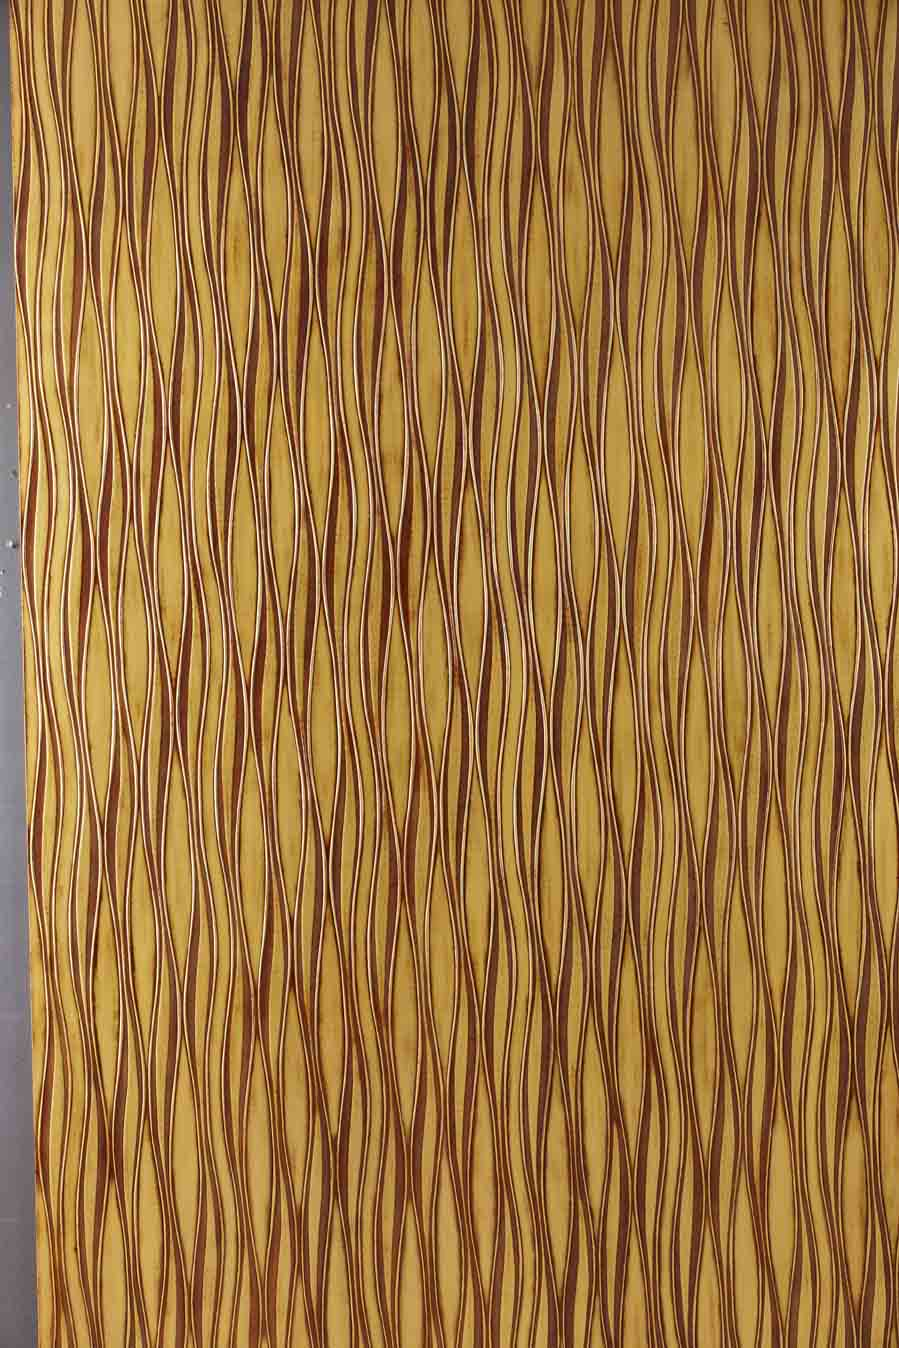 3d wall covering panels wallpaper manufacturer guangdong for 3d wall covering wallpaper